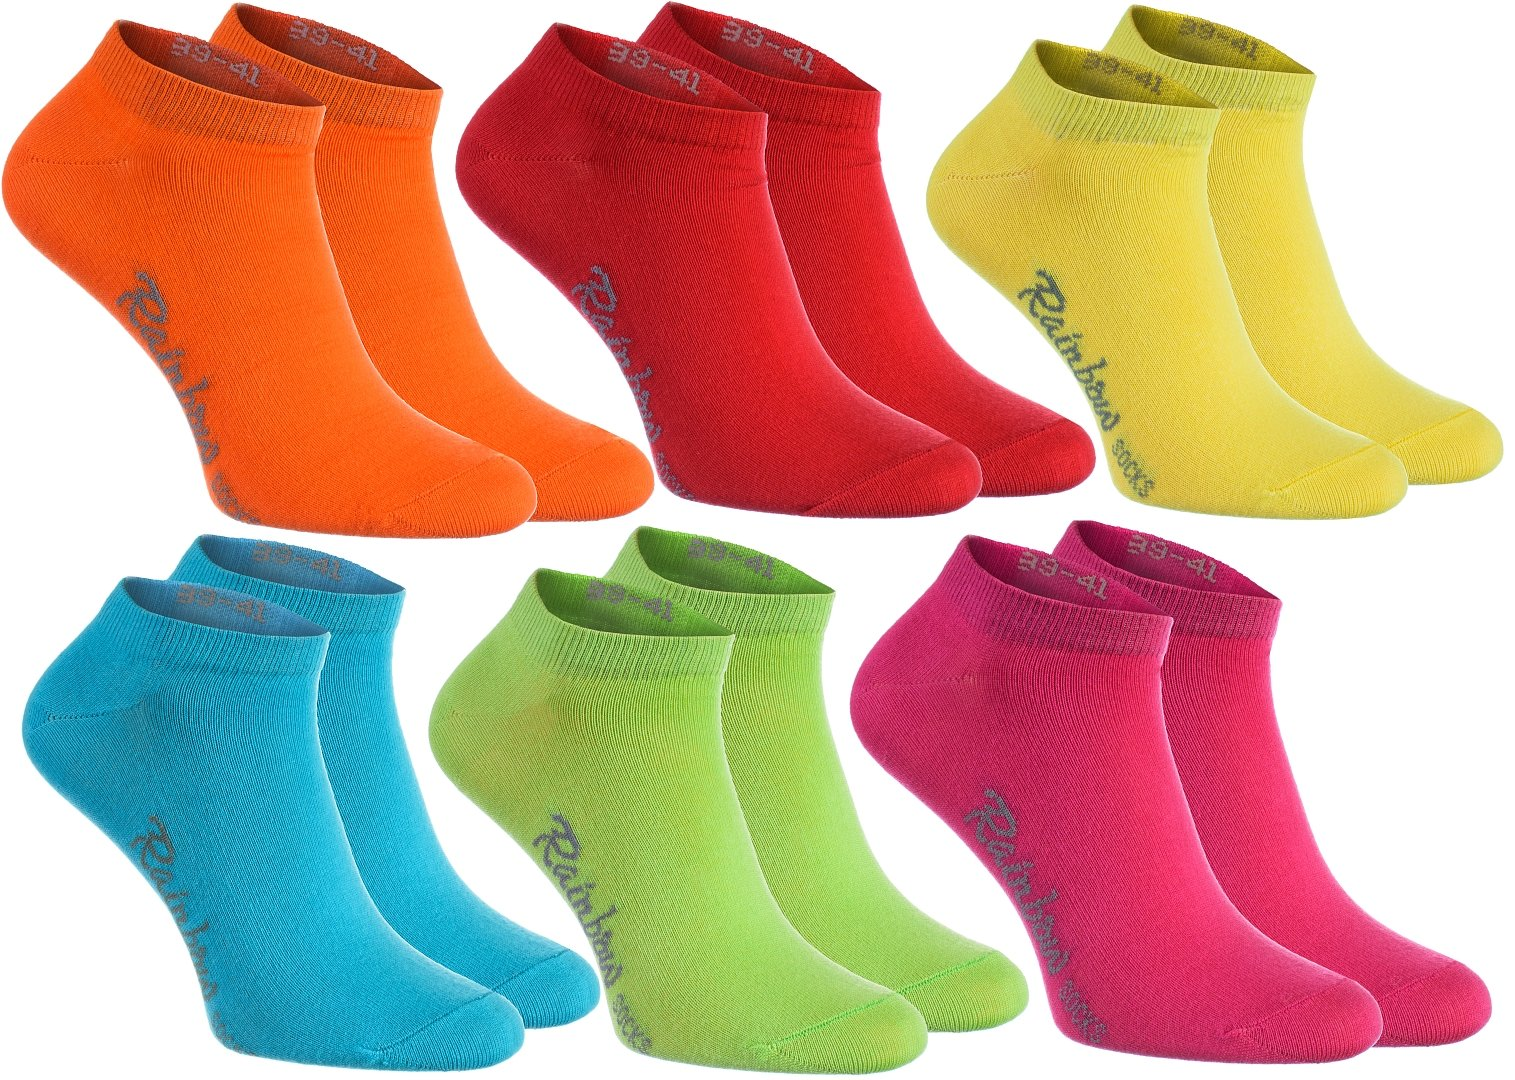 6 pairs of COTTON Socks Pack Low Cut Short Casual Everyday Bright Colors size XS